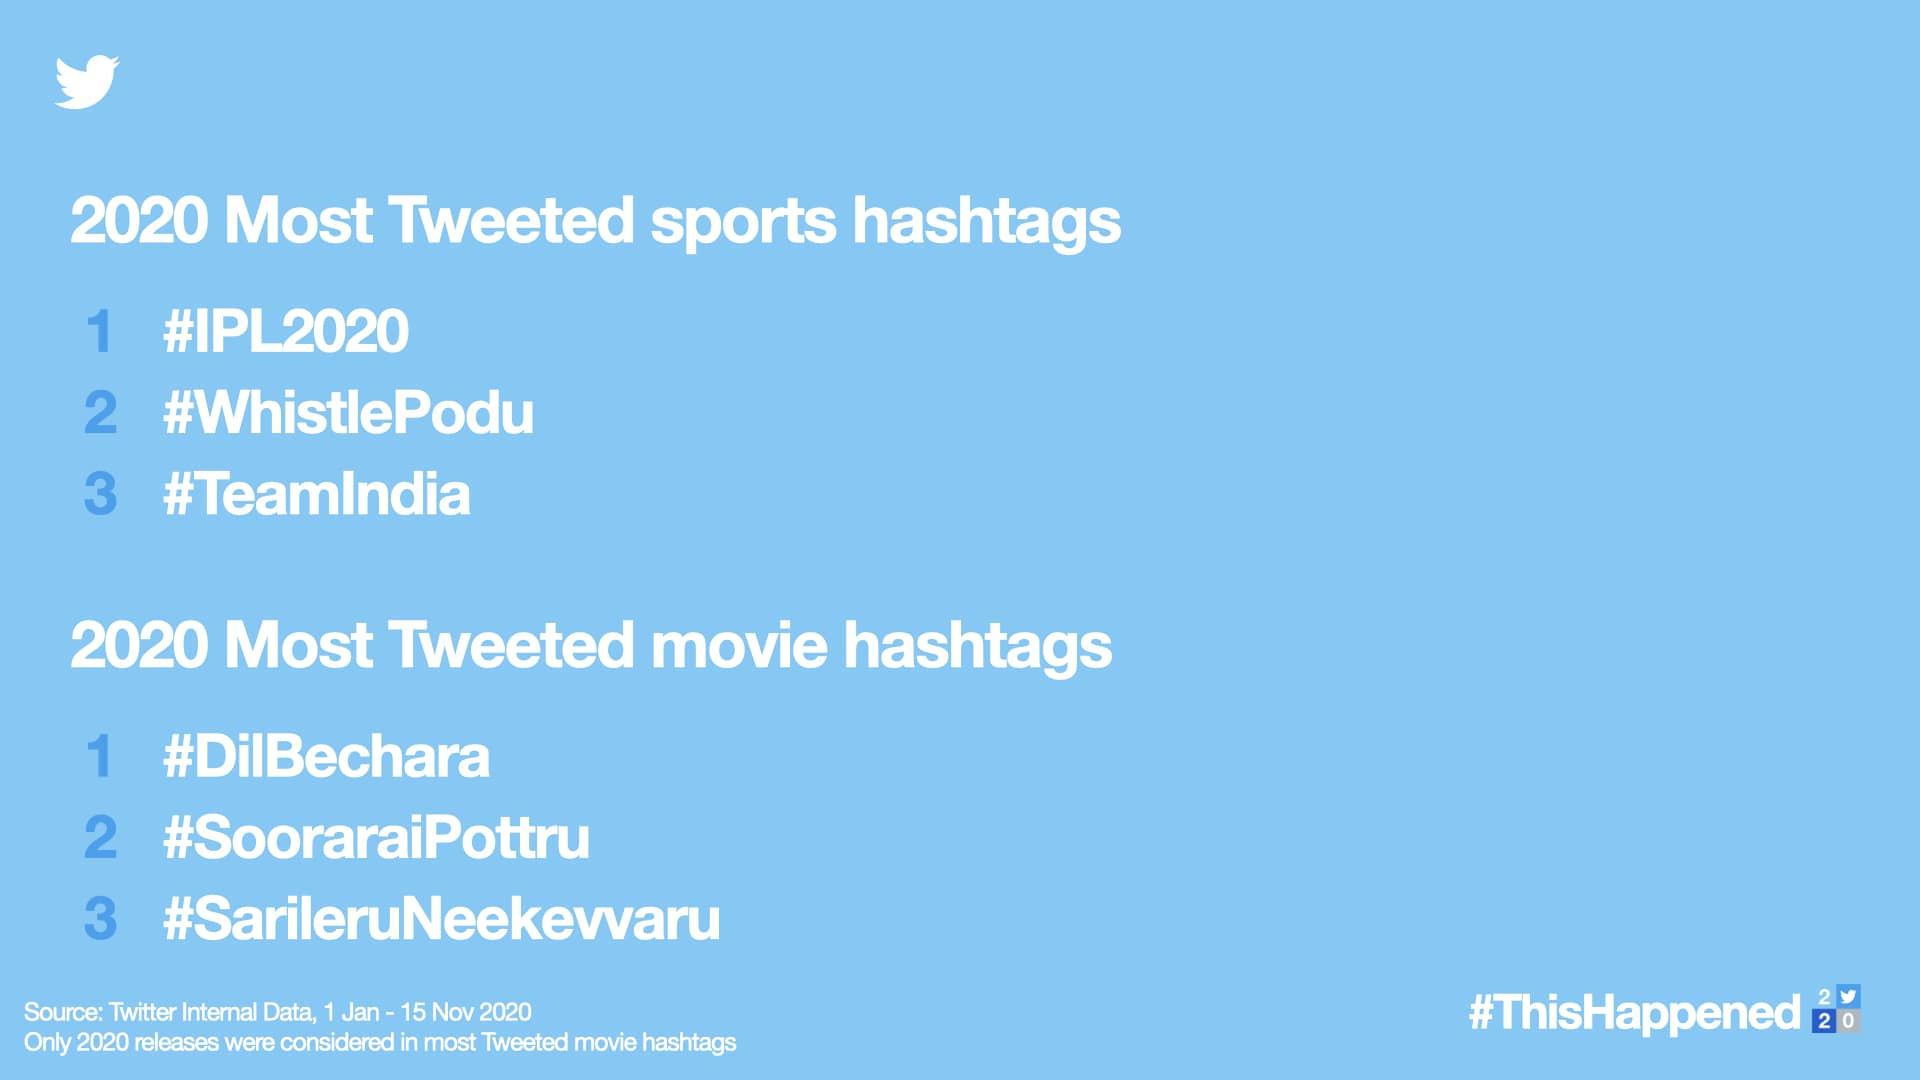 Sarileru Neekevvaru becomes third most twitted hashtag on twitter 2020